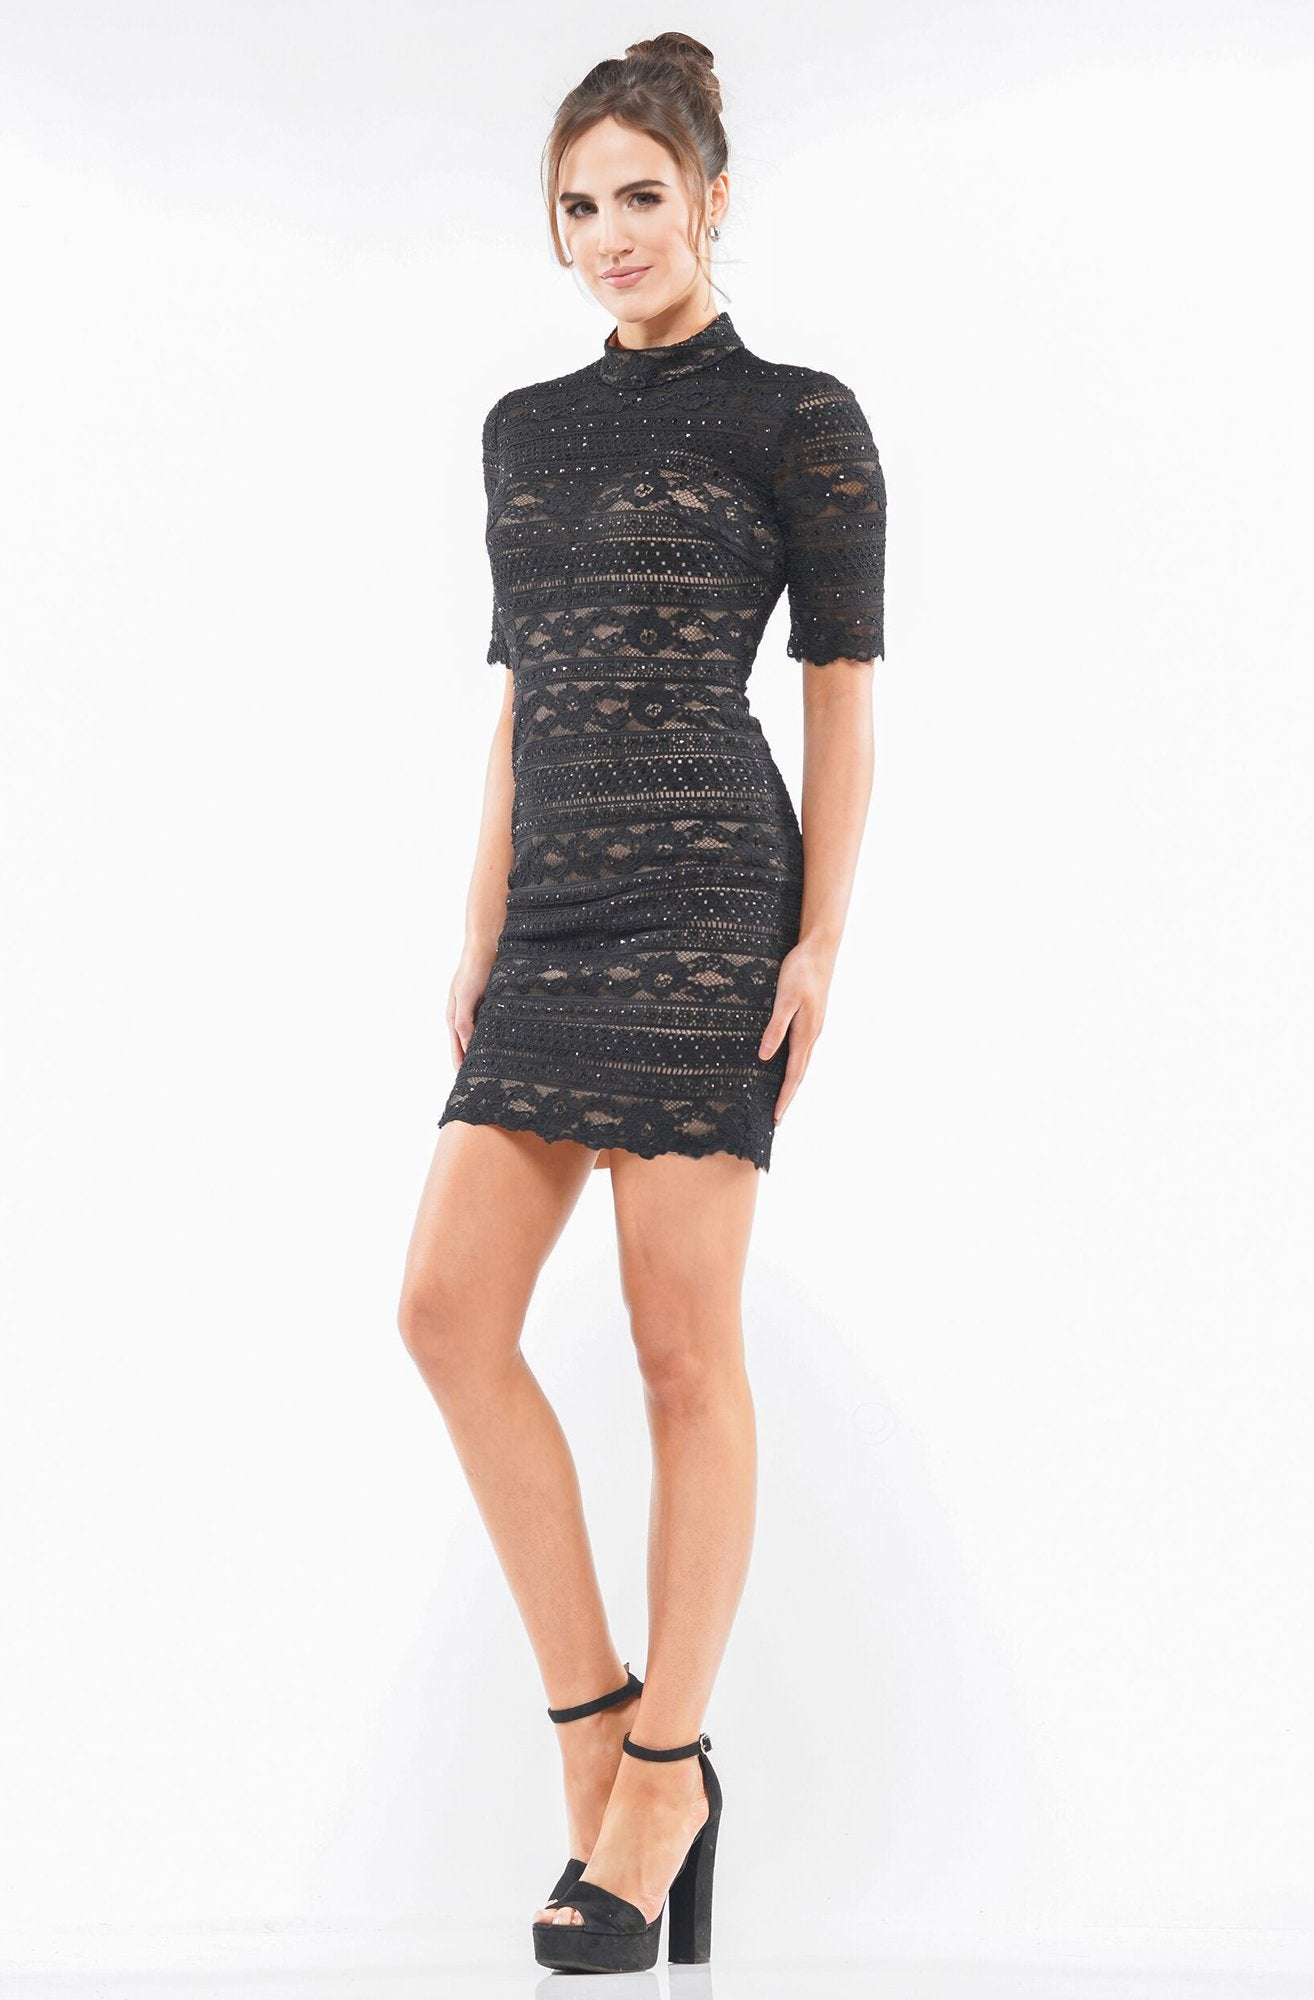 Colors Dress - 2162 Lace High Neck Sheath Dress in Black